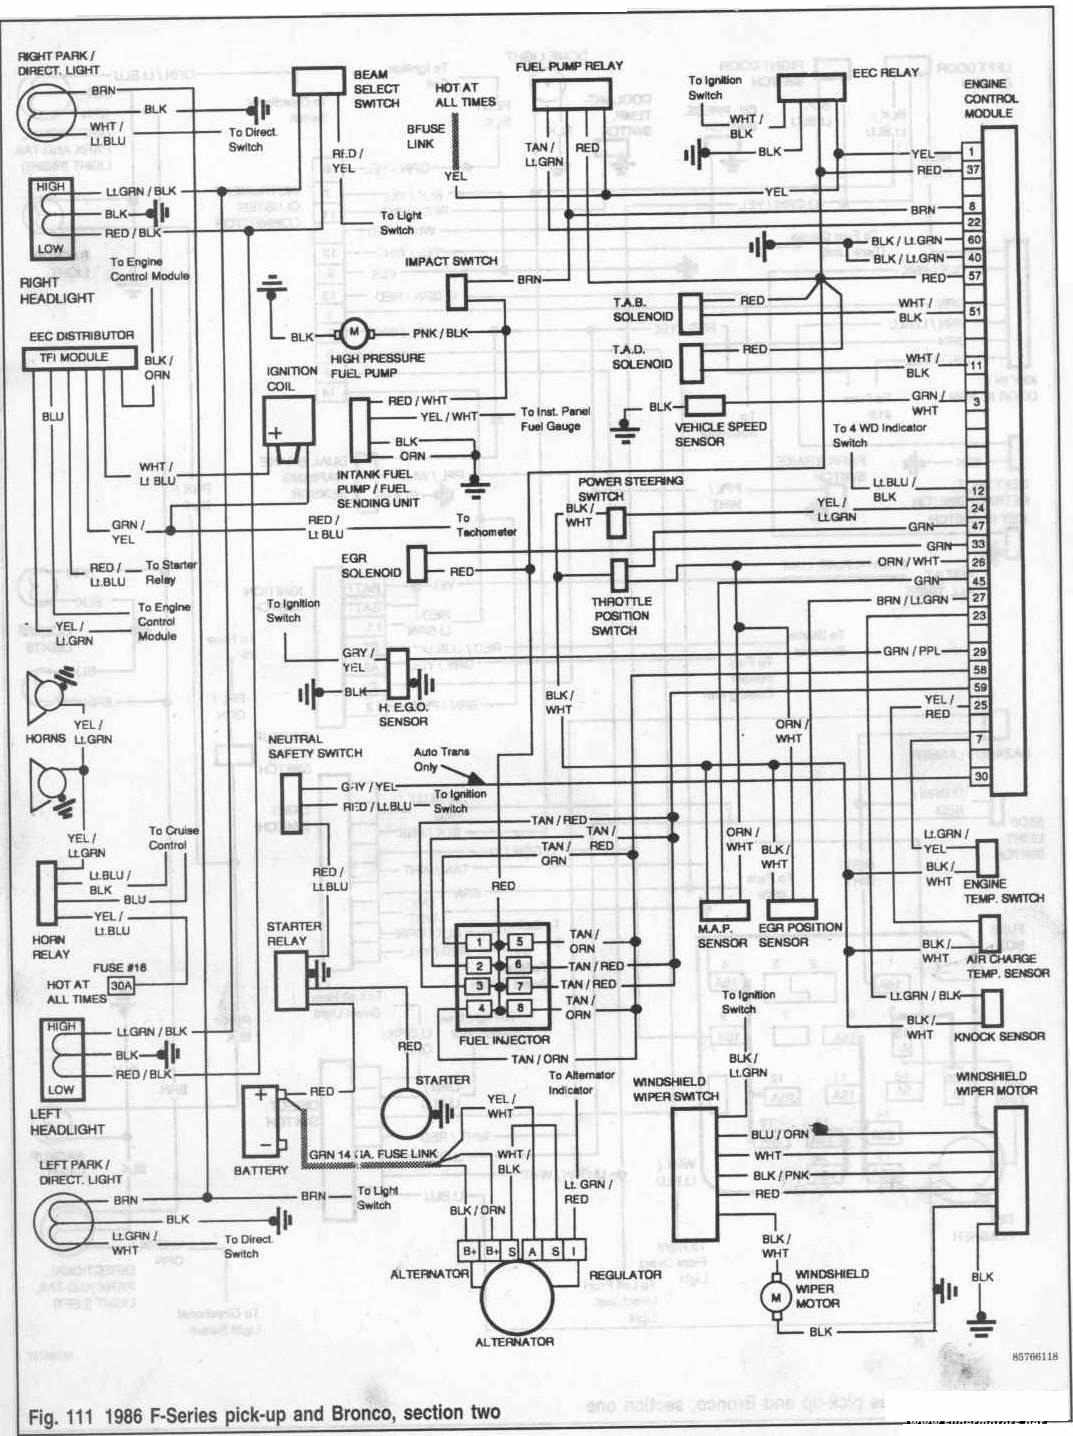 1988 Ford F150 Radio Wiring Diagram from motogurumag.com